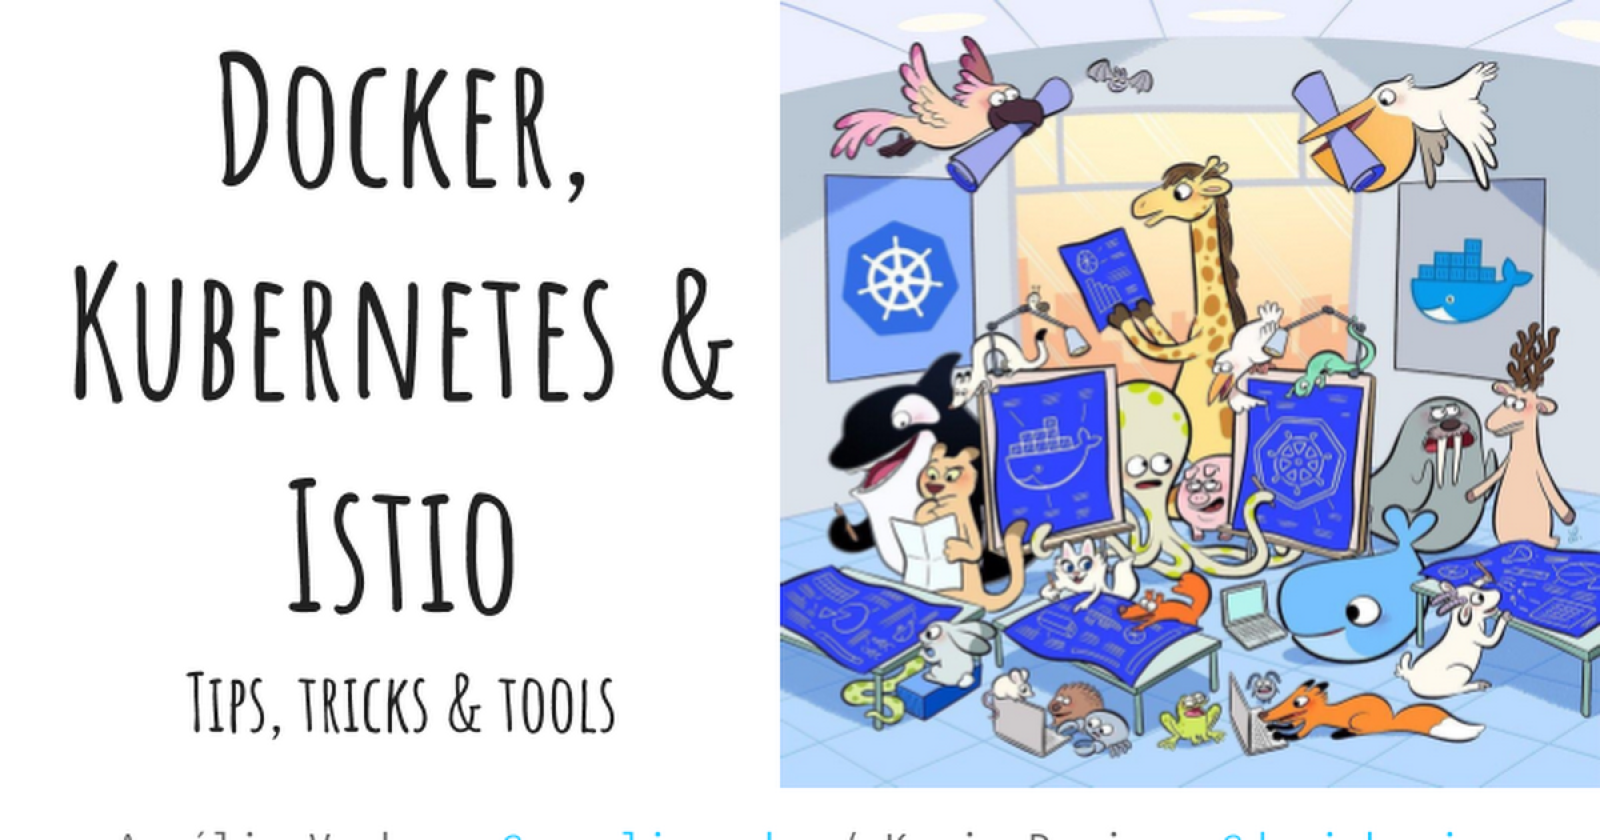 Docker, Kubernetes & Istio : Tips, tricks & tools